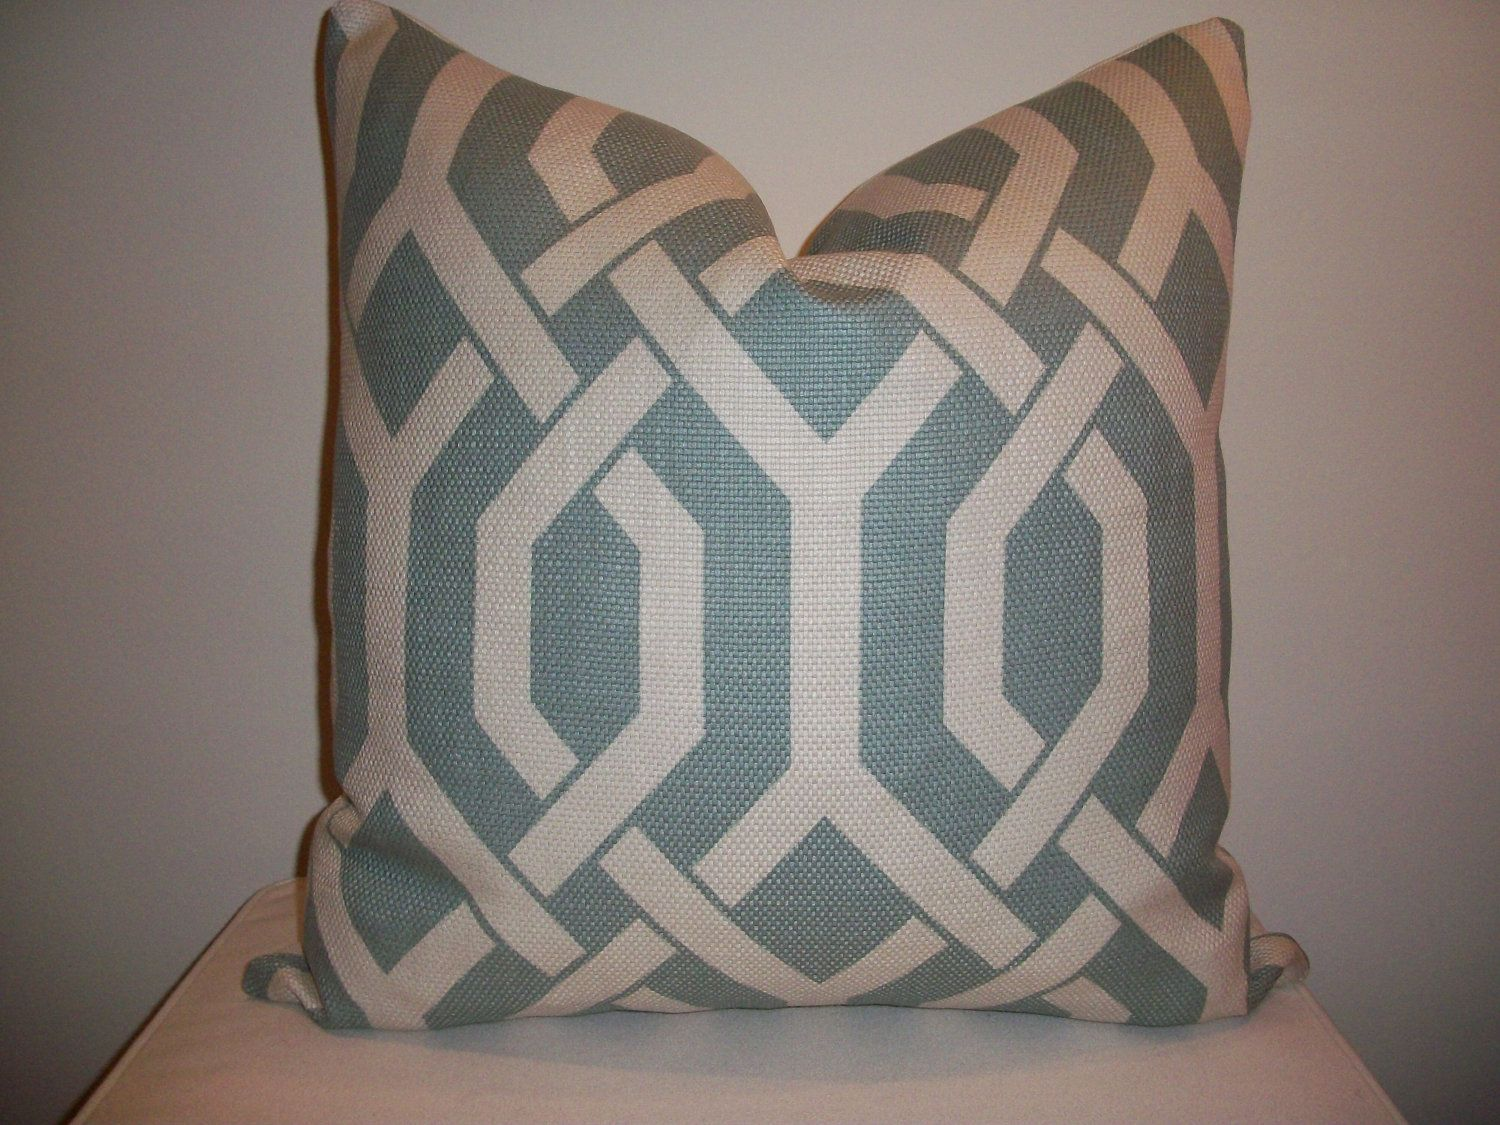 Designer Geometric Pillow Cover 20 x 20 Sky Blue and Beige Lattice Print - Decorative Throw Pillow (more sizes available). $38.00, via Etsy.